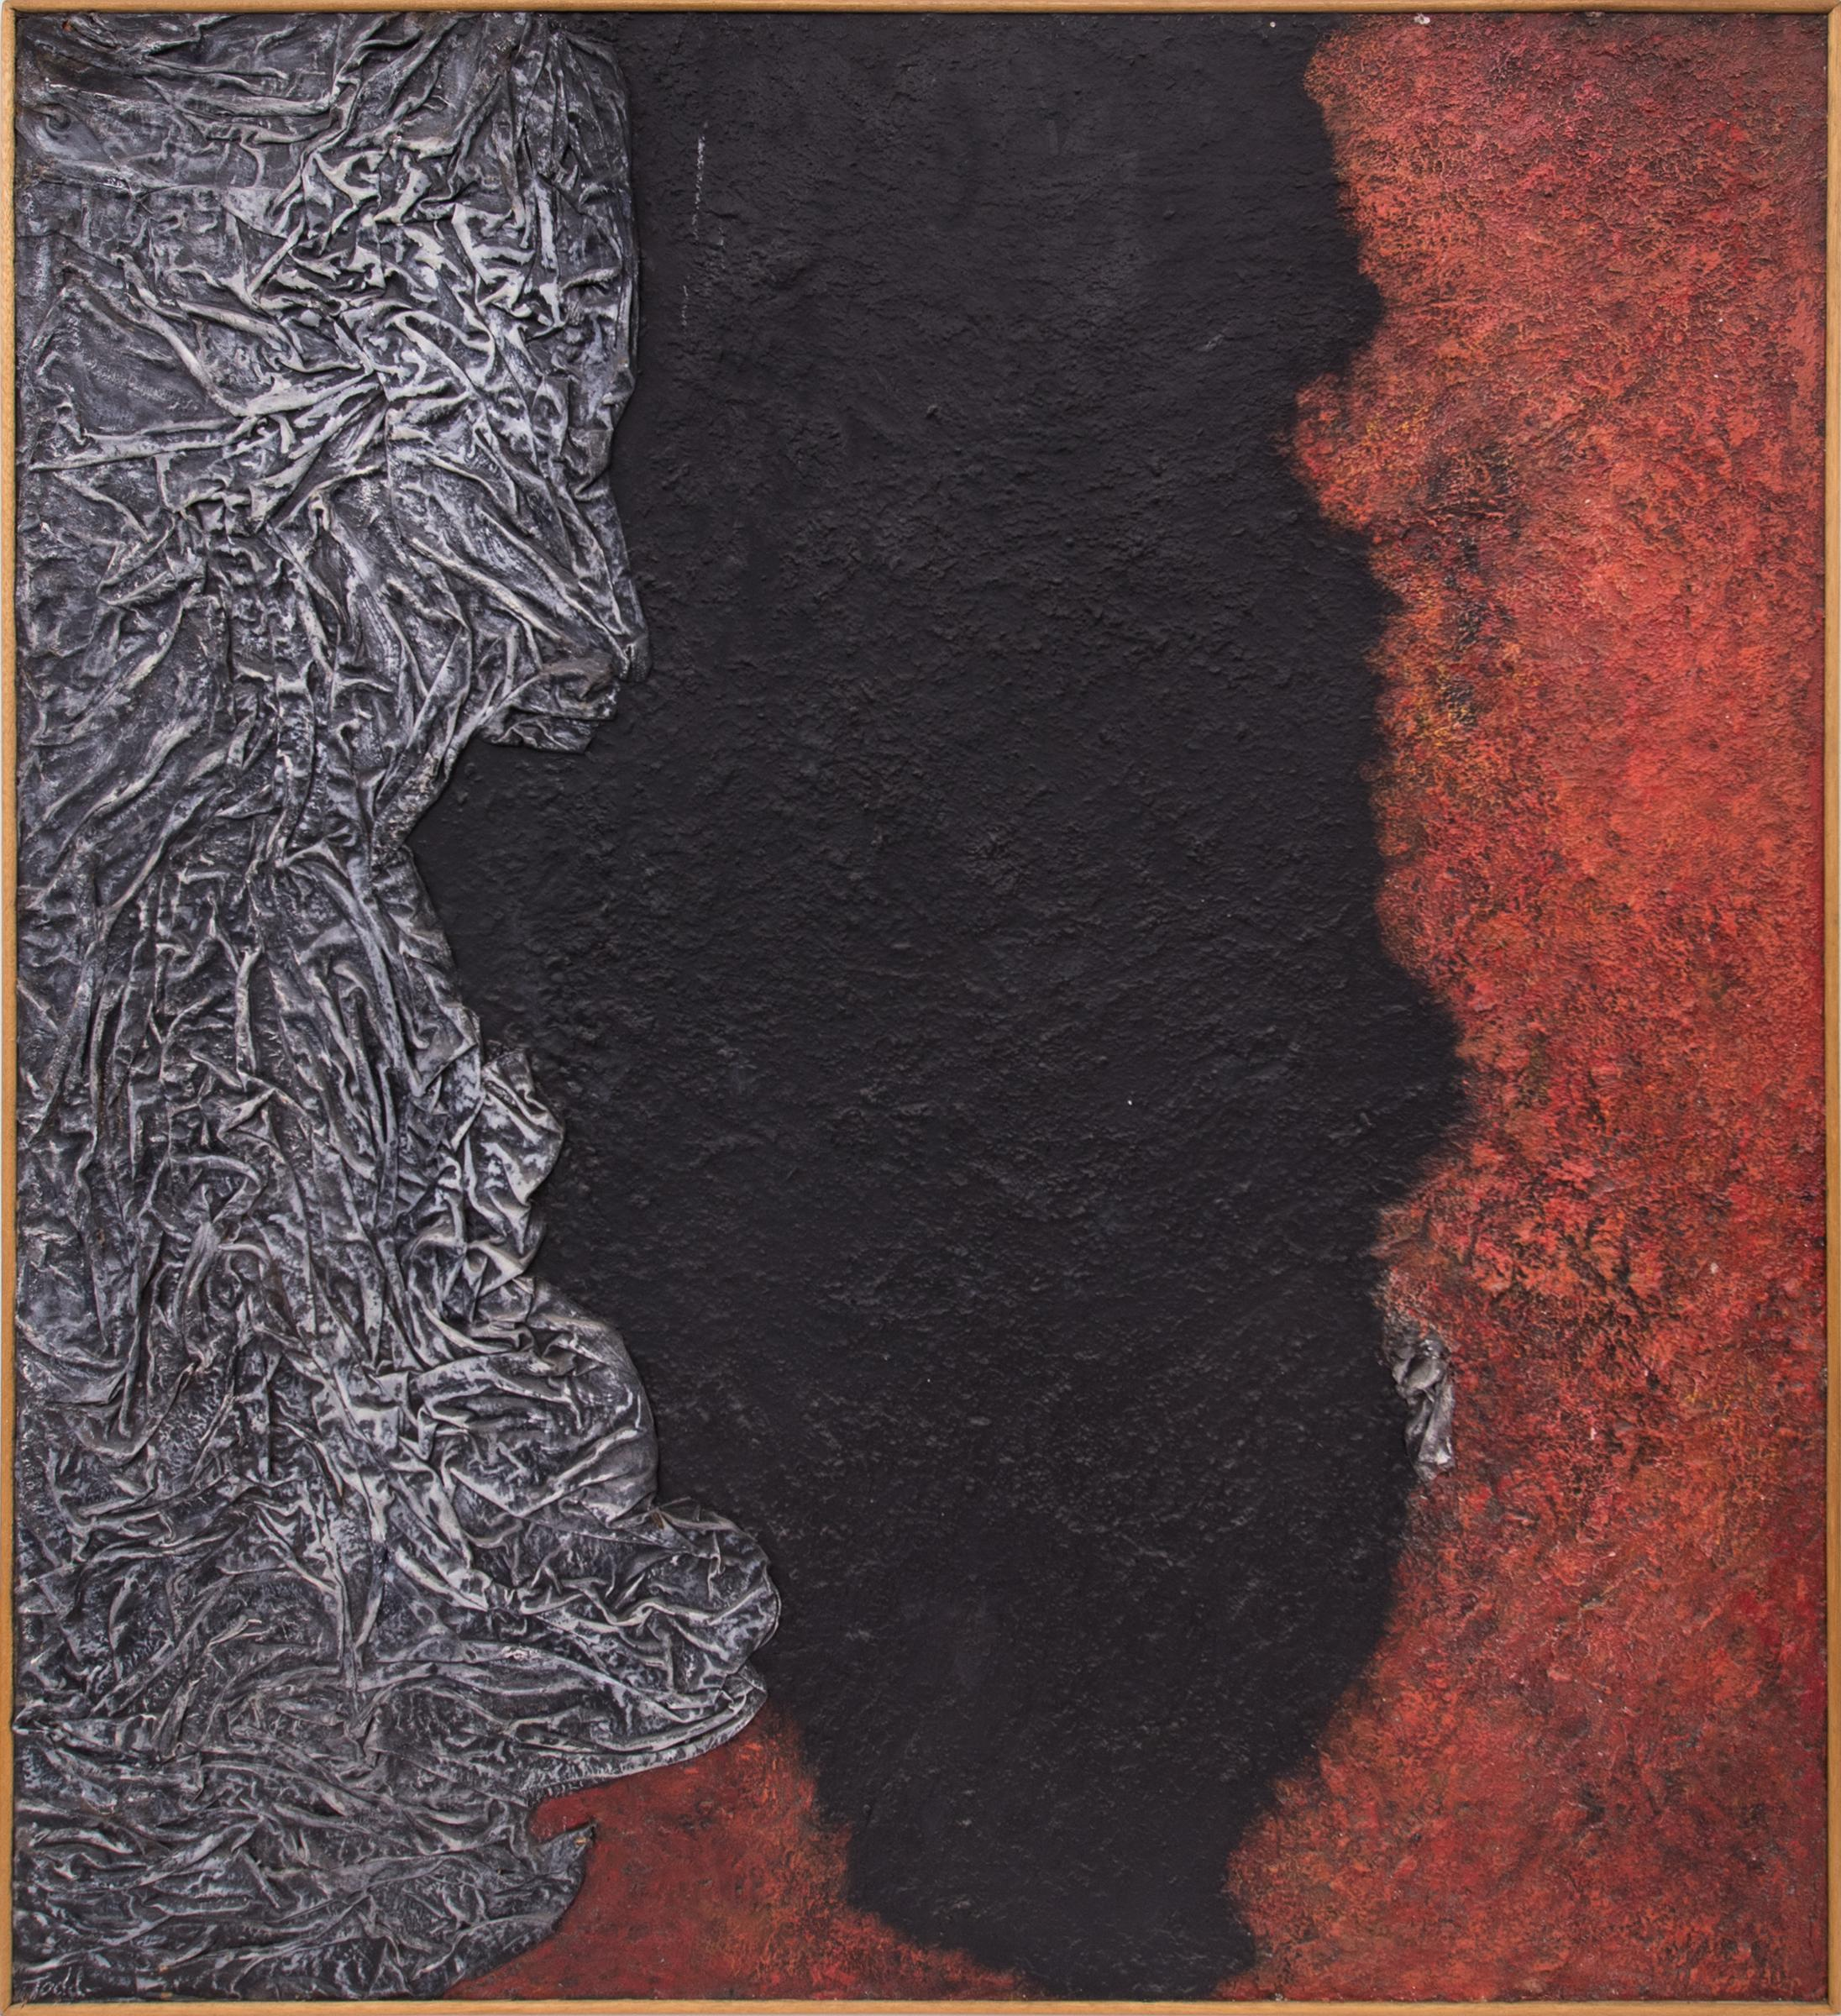 Evolution of the Gods (Abstract Painting in Red, Black, Gray & White)